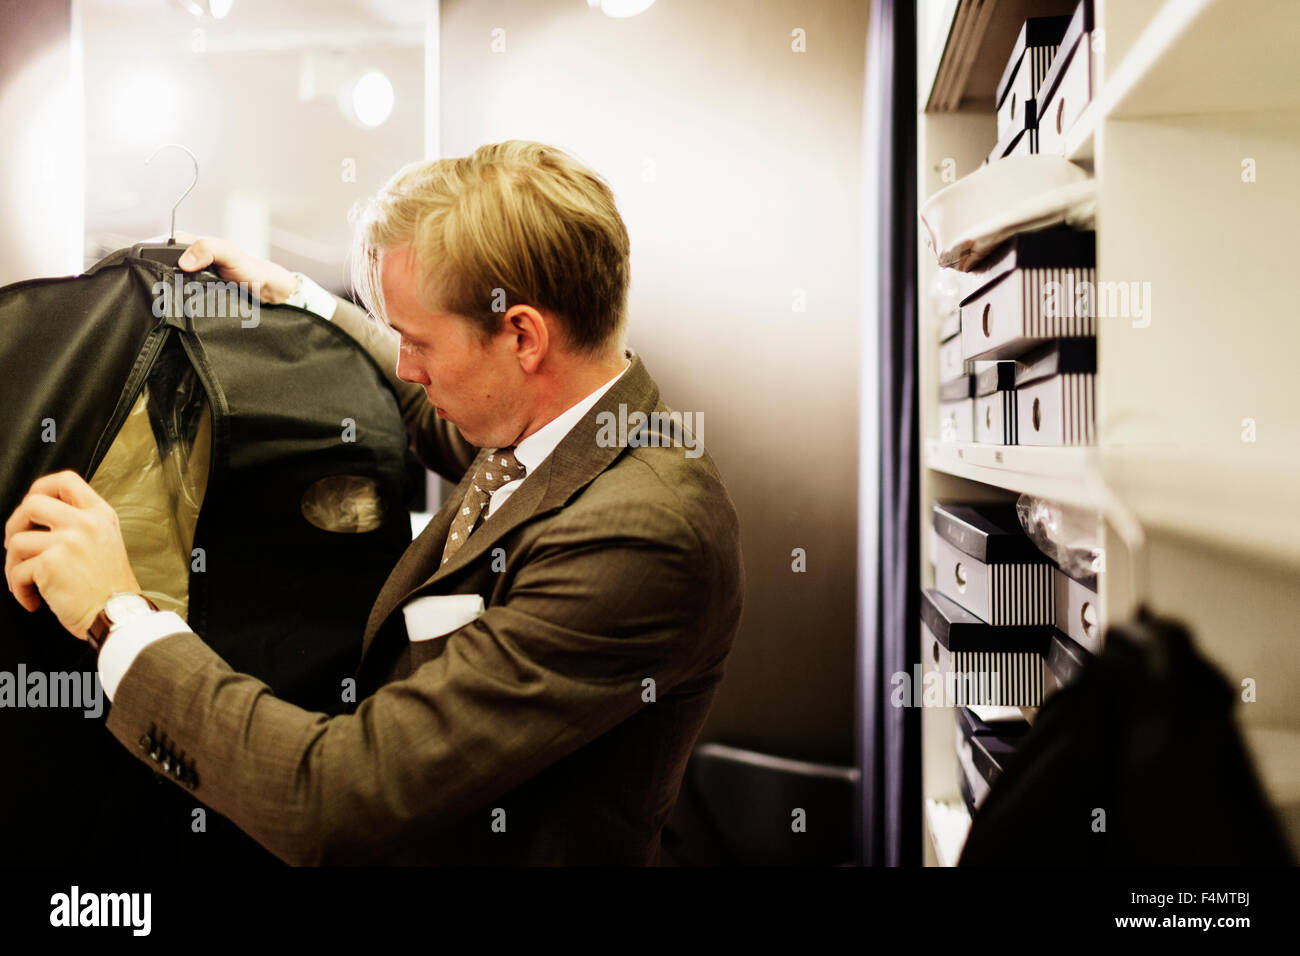 Sales clerk examining suit by shelves in clothing store - Stock Image